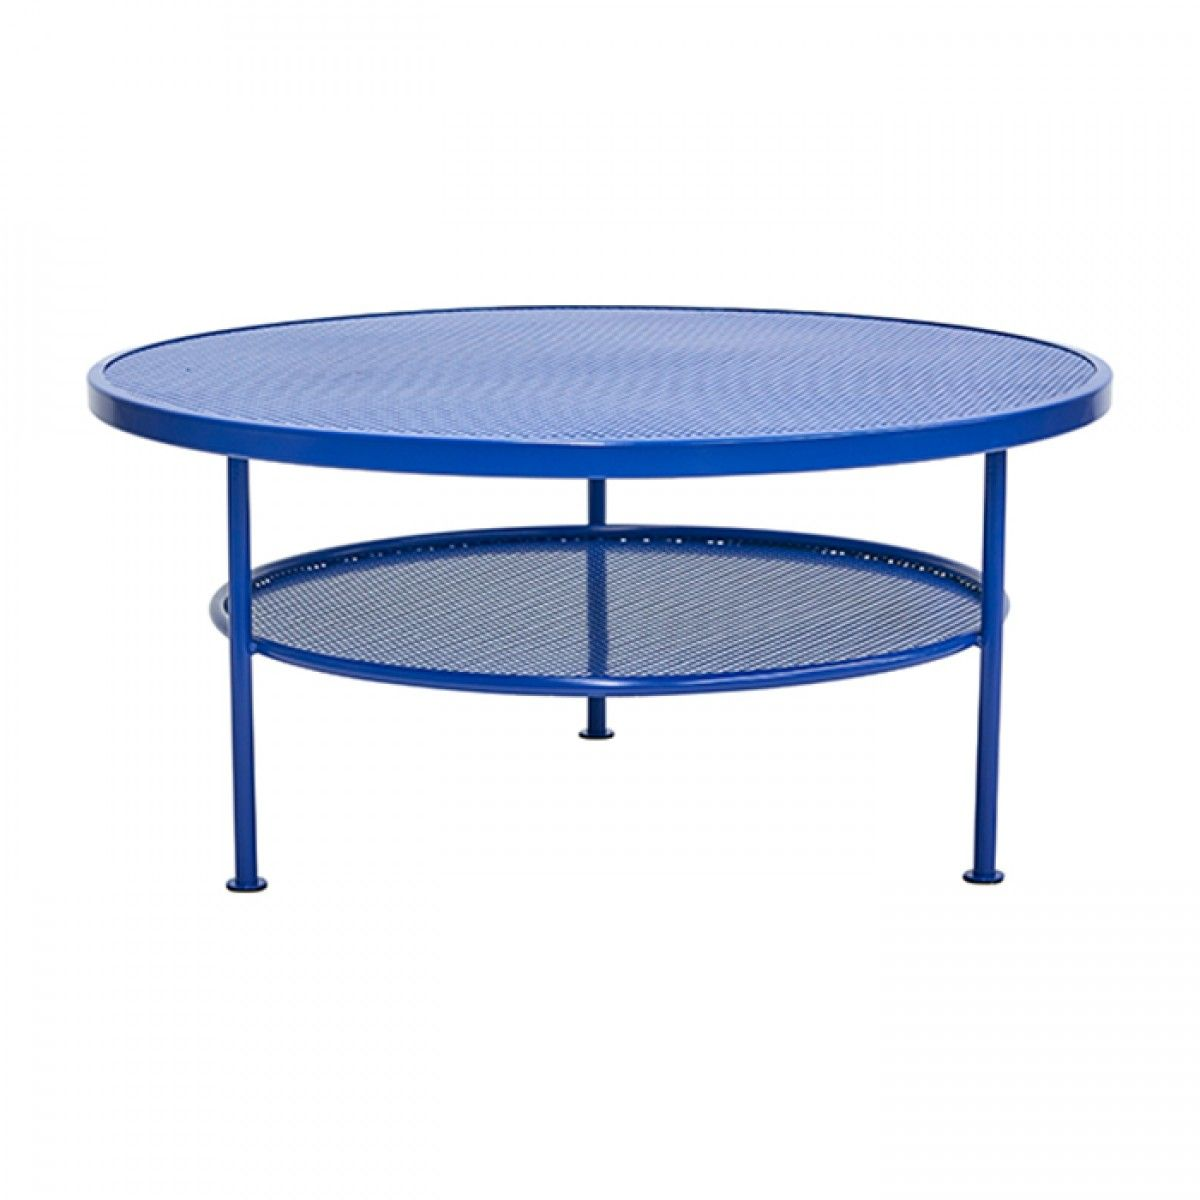 Space To Create Havana Round Coffee Table Modern Coffee Tables Buy Your Furniture Online Or In Store Coffee Table Table Round Coffee Table [ 1200 x 1200 Pixel ]